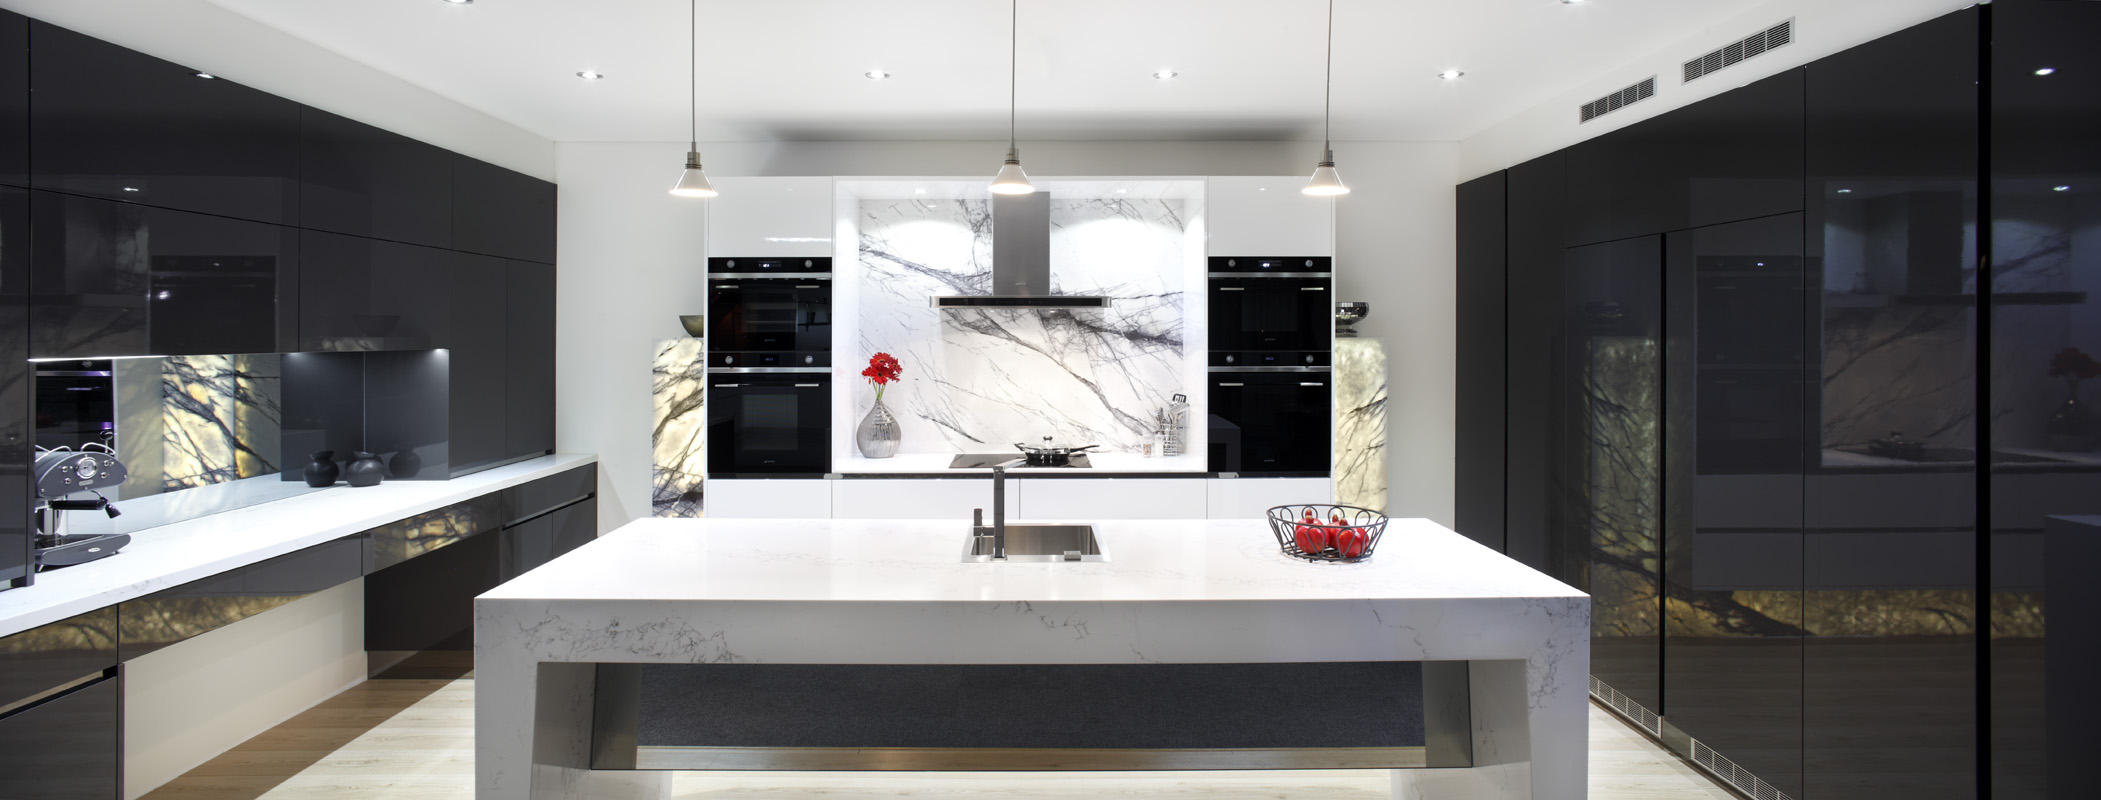 Kitchen Design Sydney